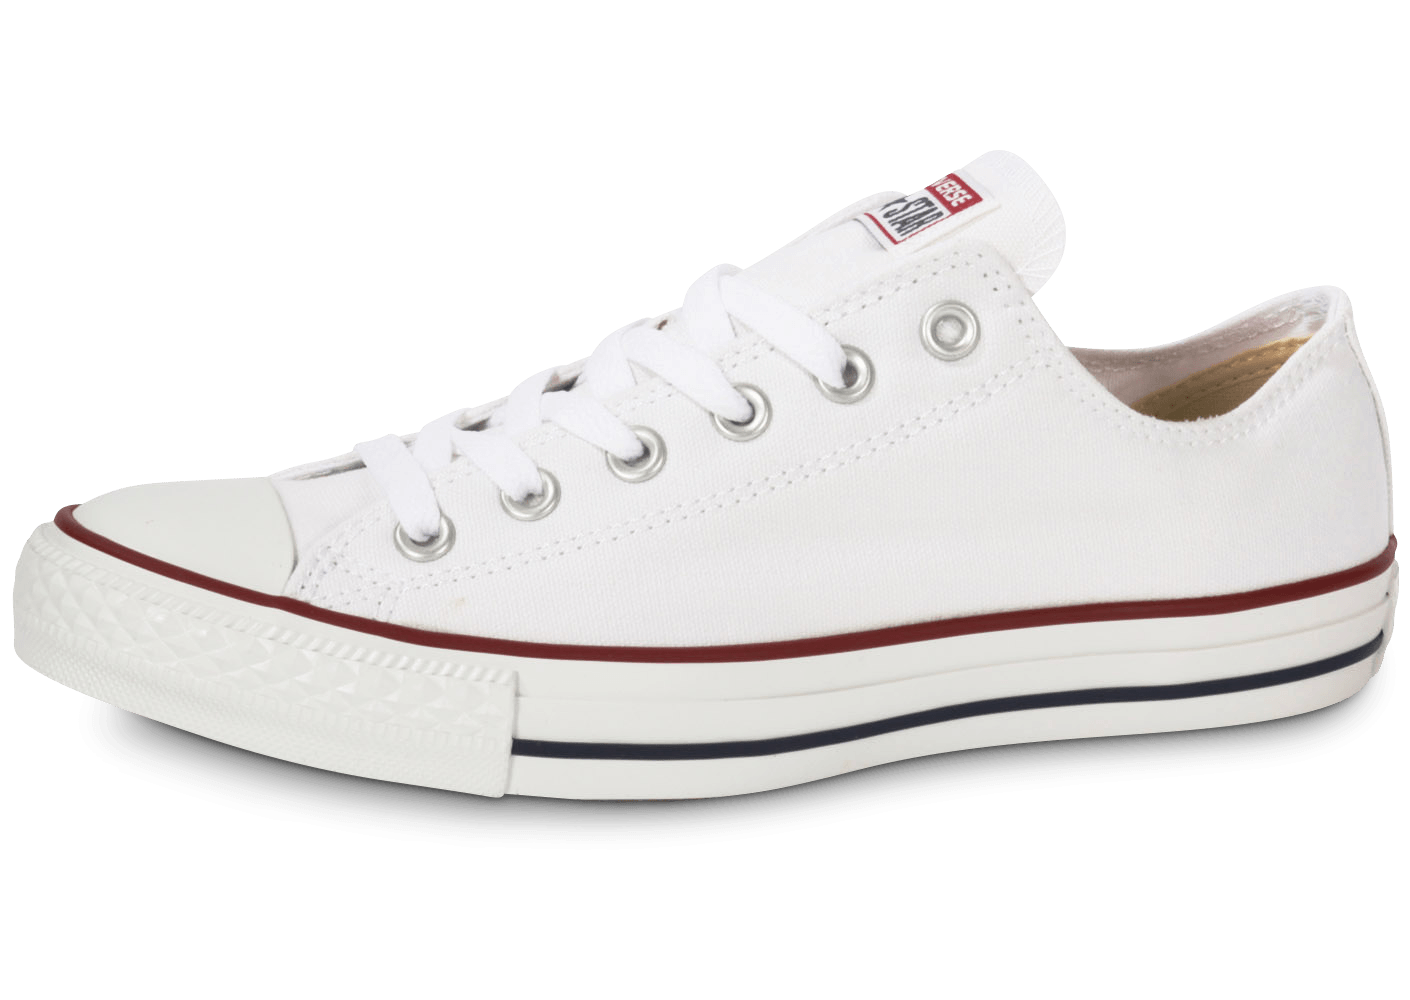 converse chuck taylor all star low blanche chaussures femme chausport. Black Bedroom Furniture Sets. Home Design Ideas